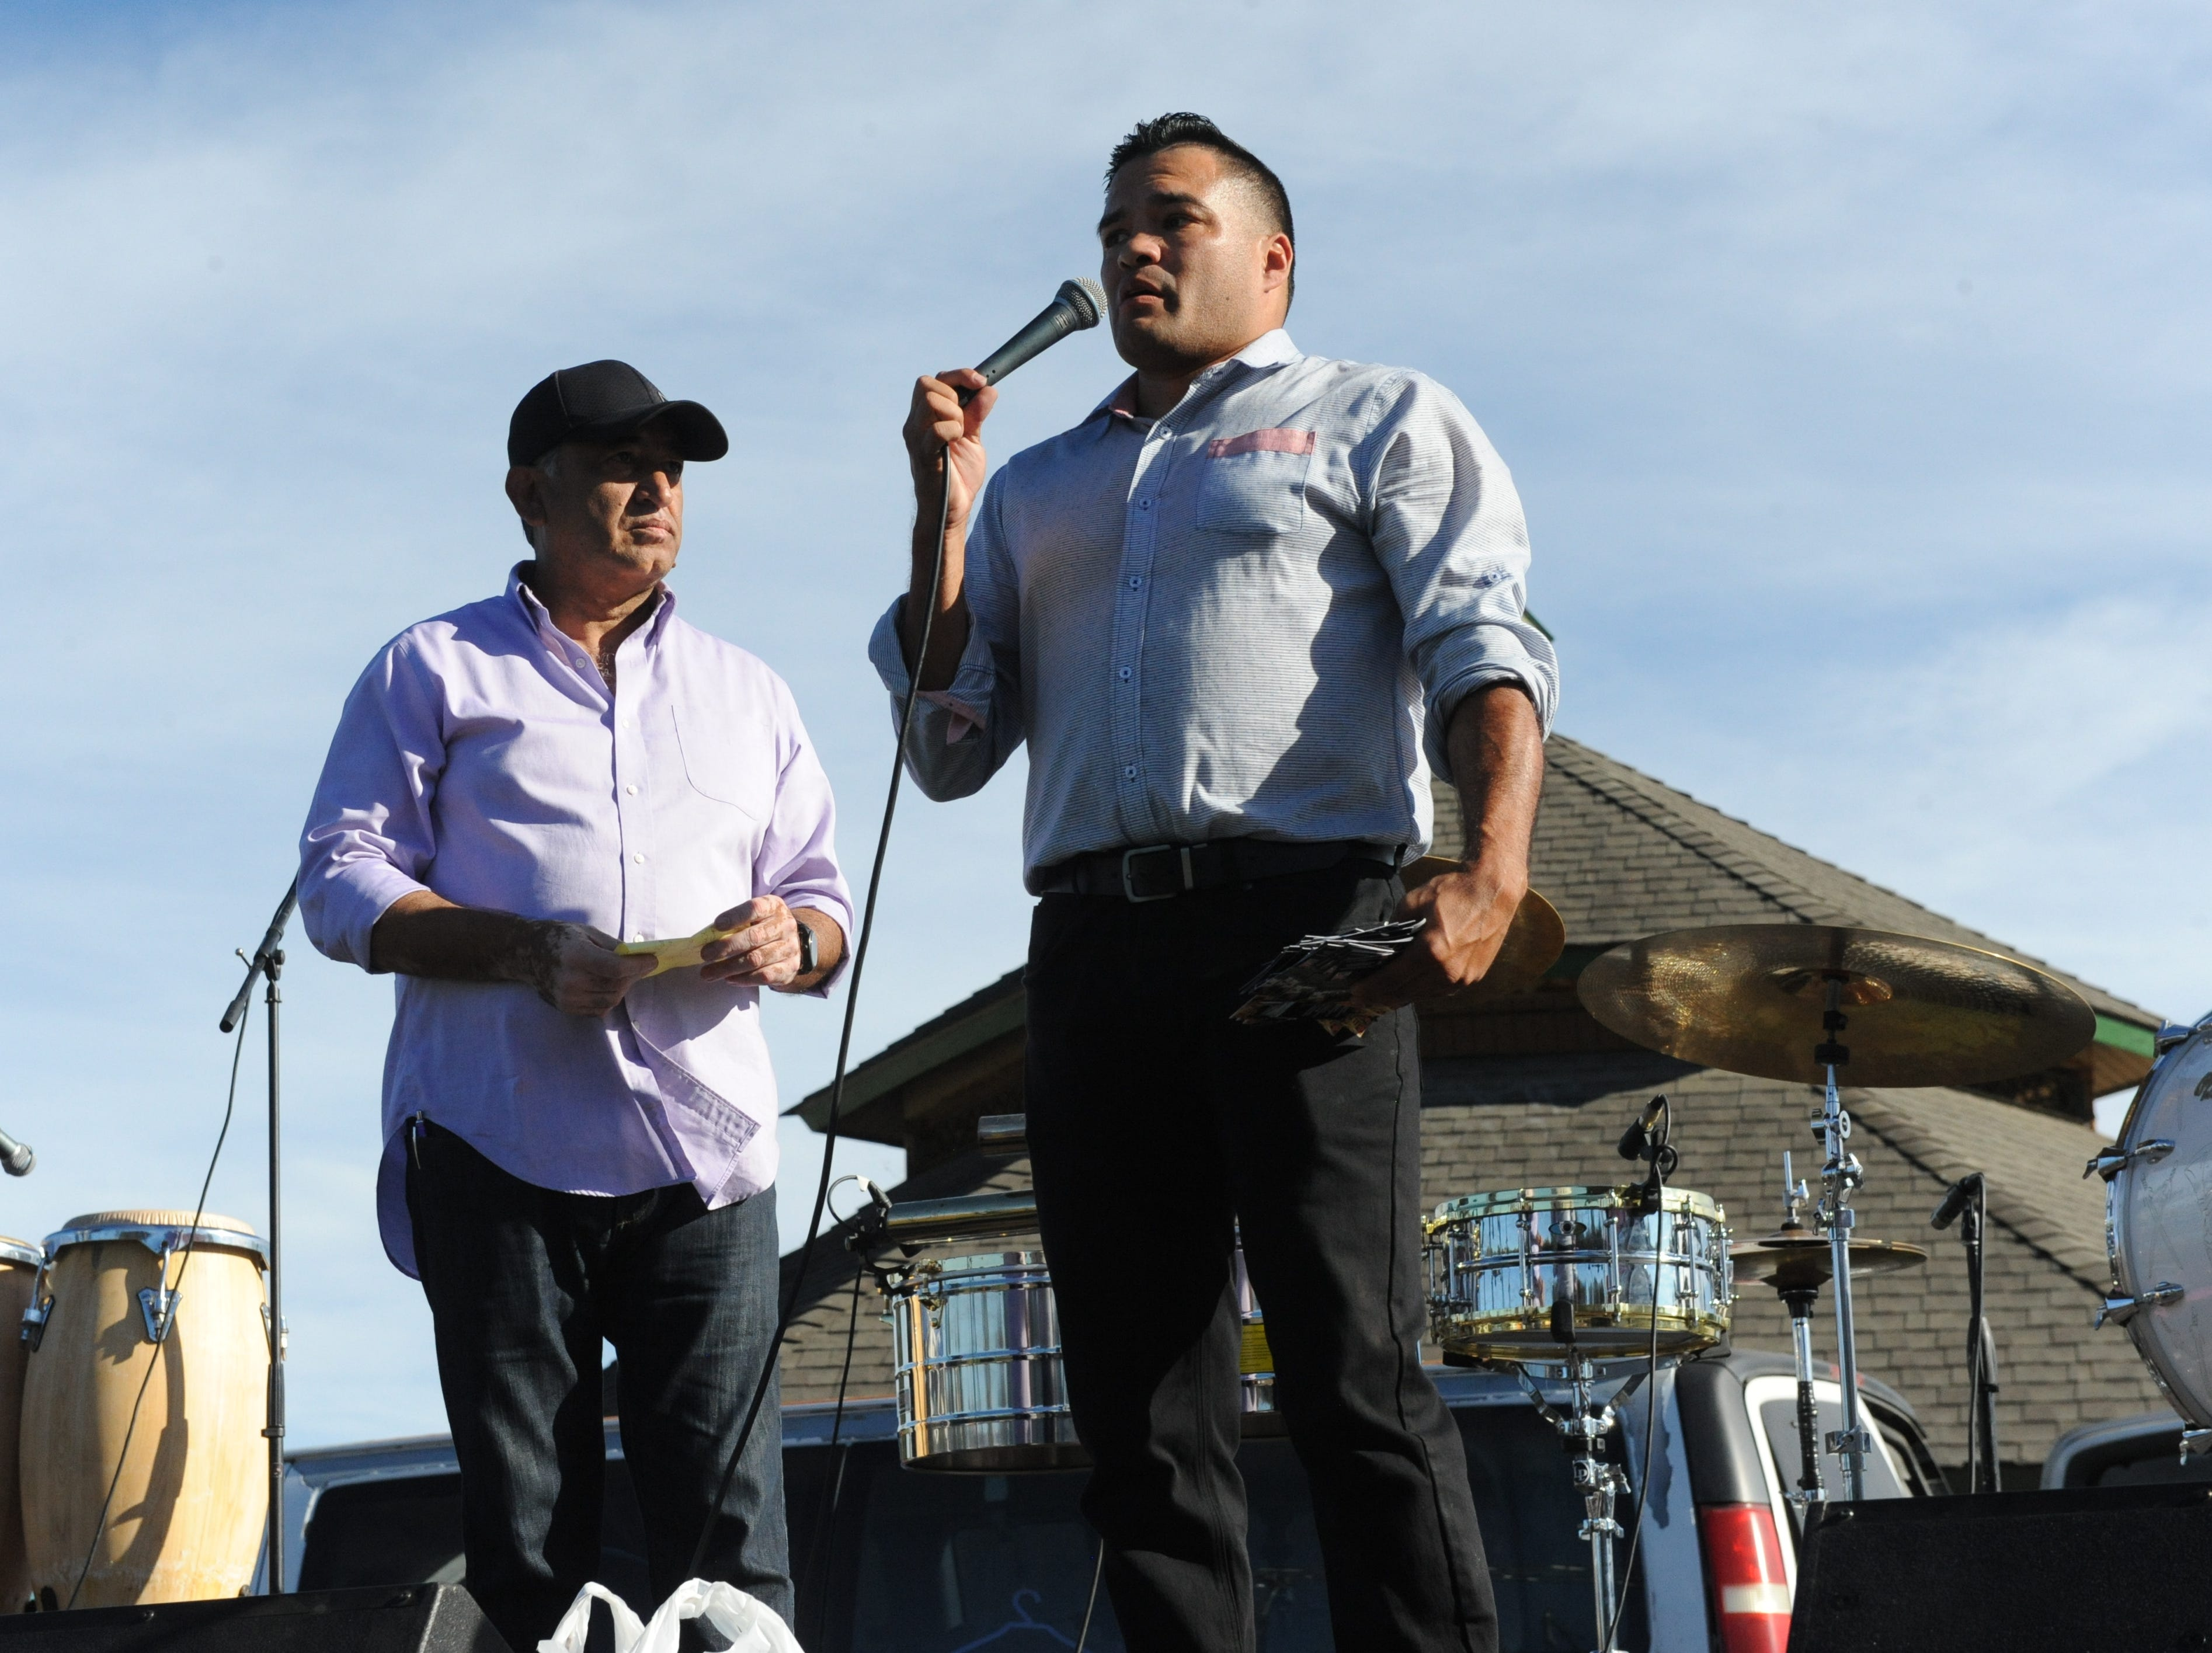 Victor Garcia, left, watches as former welterweight champion and Olympian, José Celaya, addresses the crowd Sunday at the Día de los Muertos celebration in Salinas.